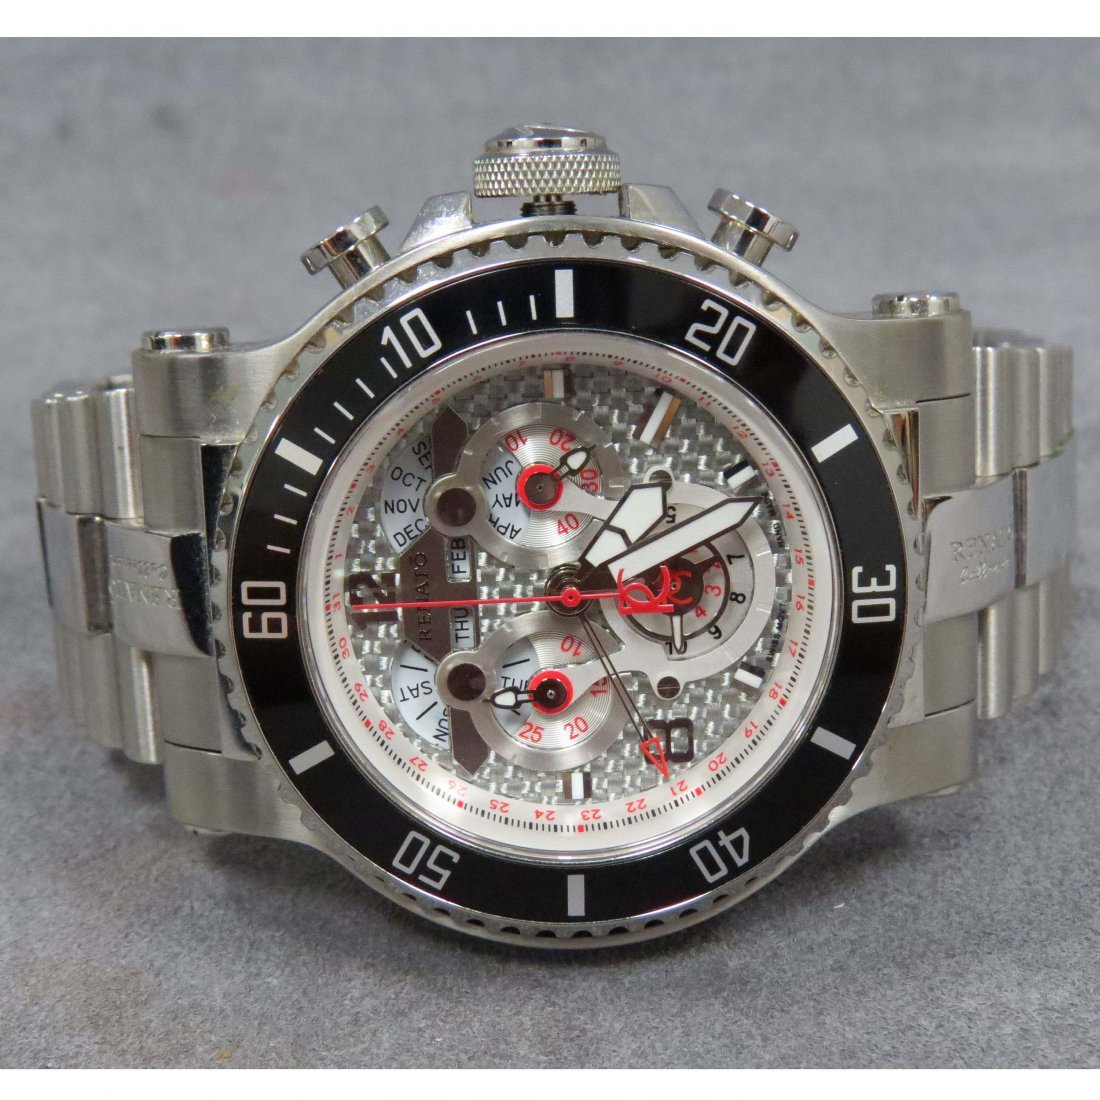 RENATO STAINLESS LIMITED EDITION #64/115, WATCH